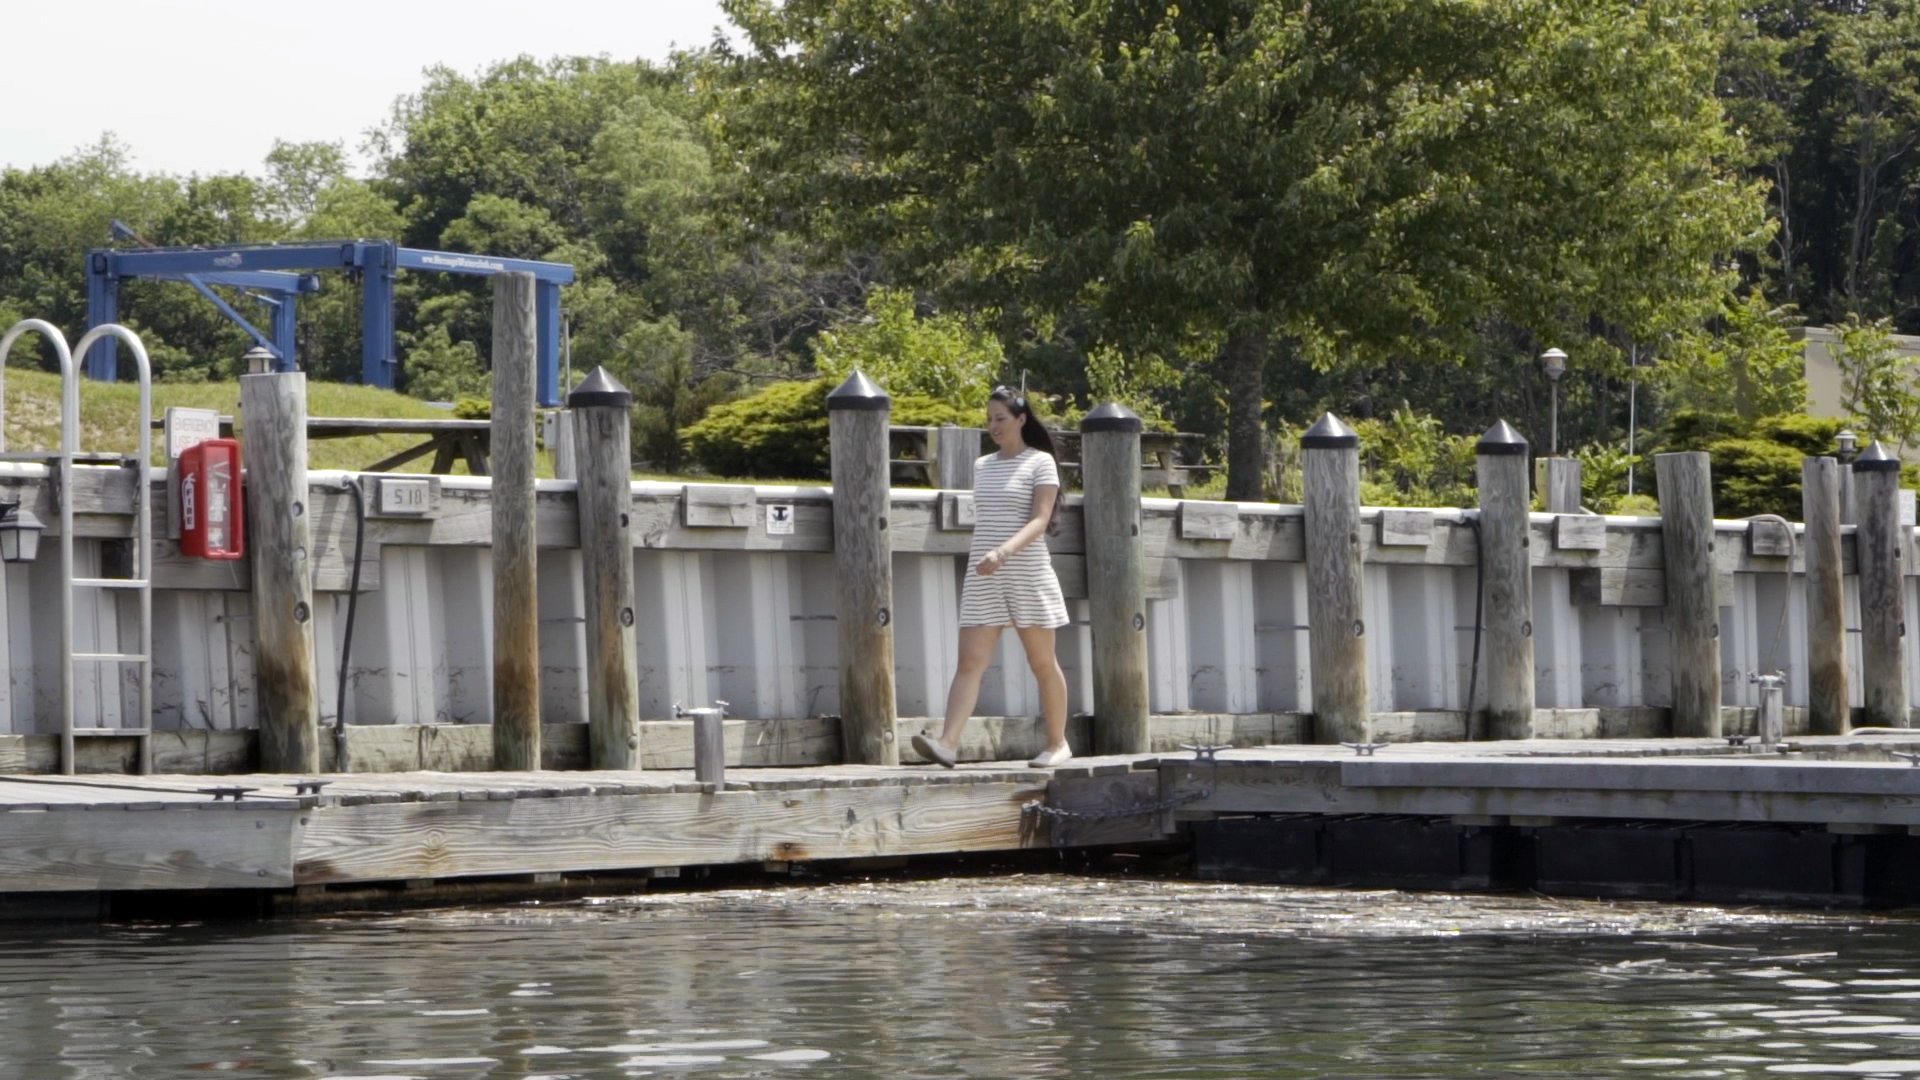 A woman walking along a dock in front of a bulkhead.